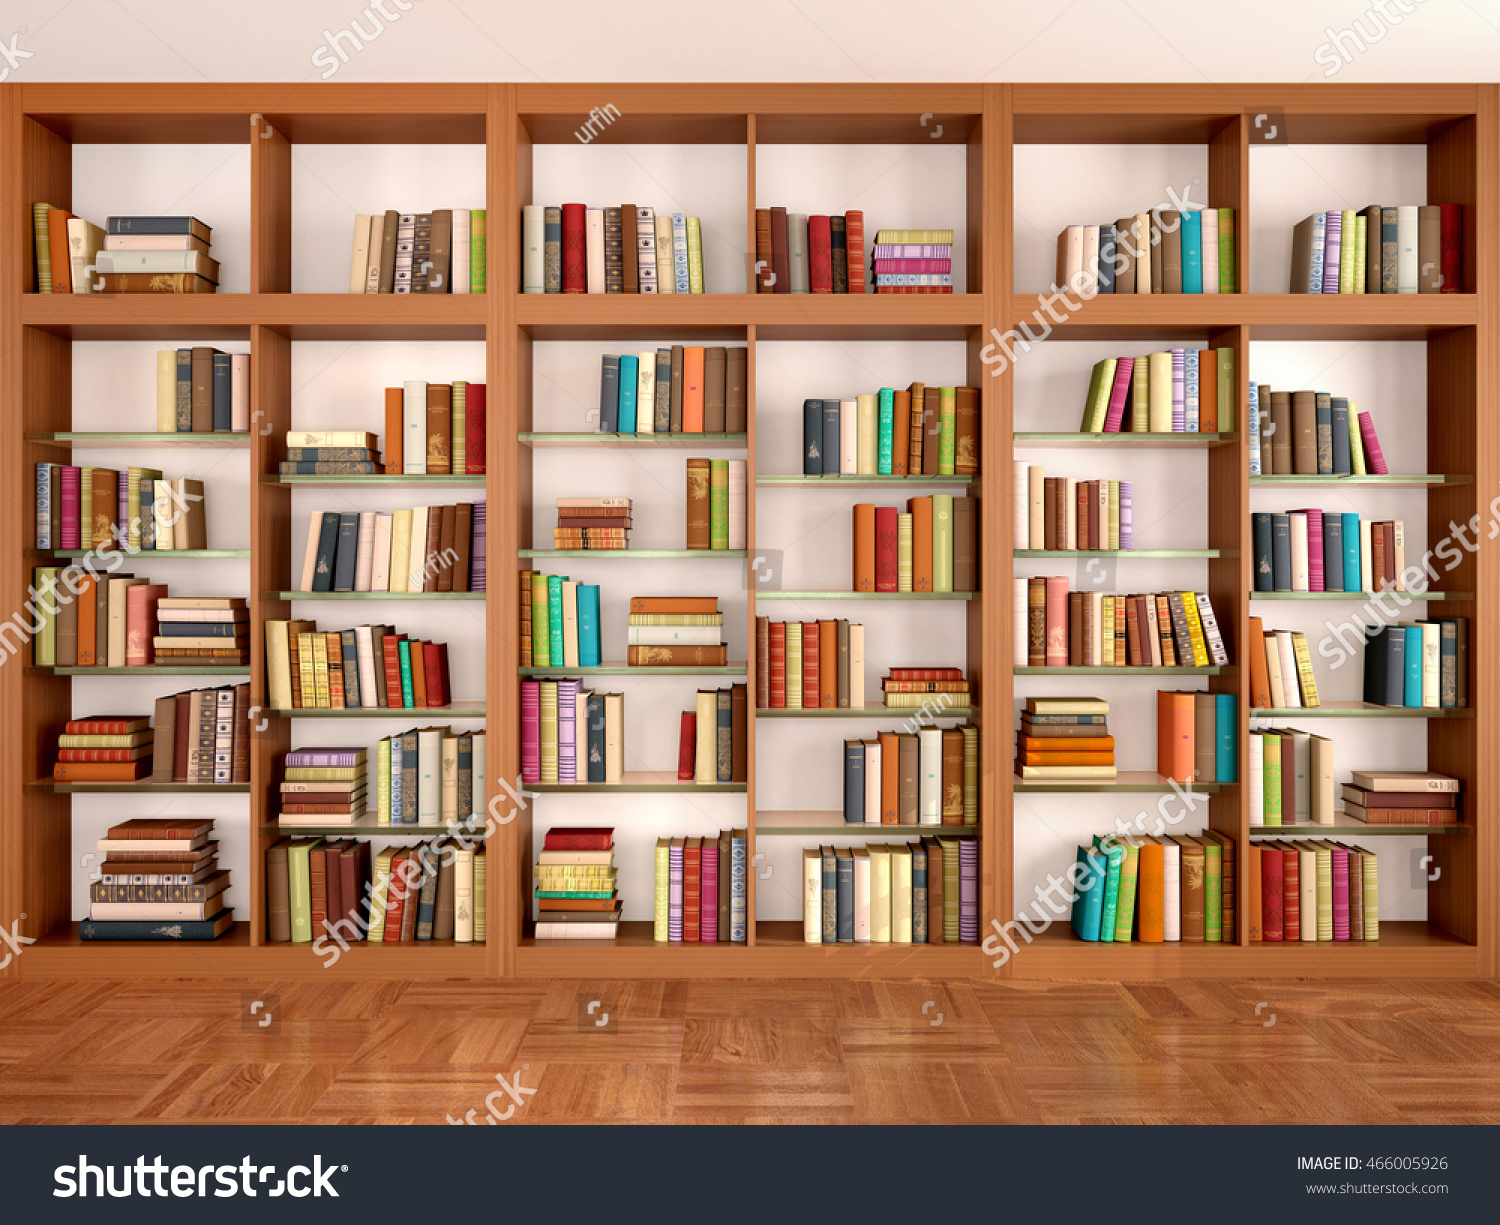 Wooden and glass shelves with different books